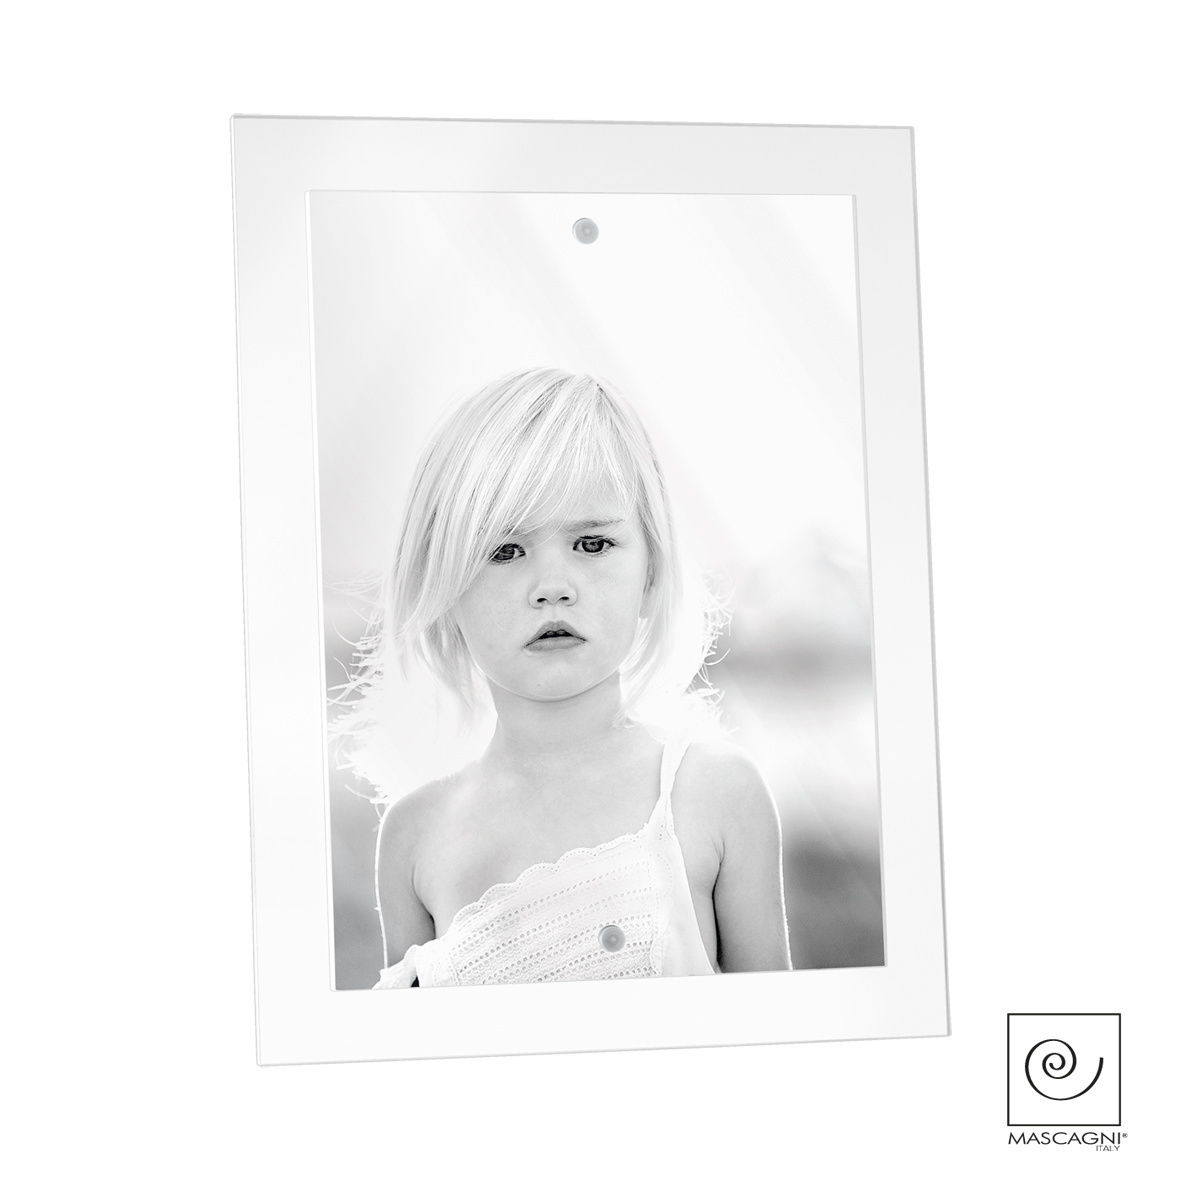 Art Mascagni A535 PHOTO FRAME 13X18 - COL.BLACK